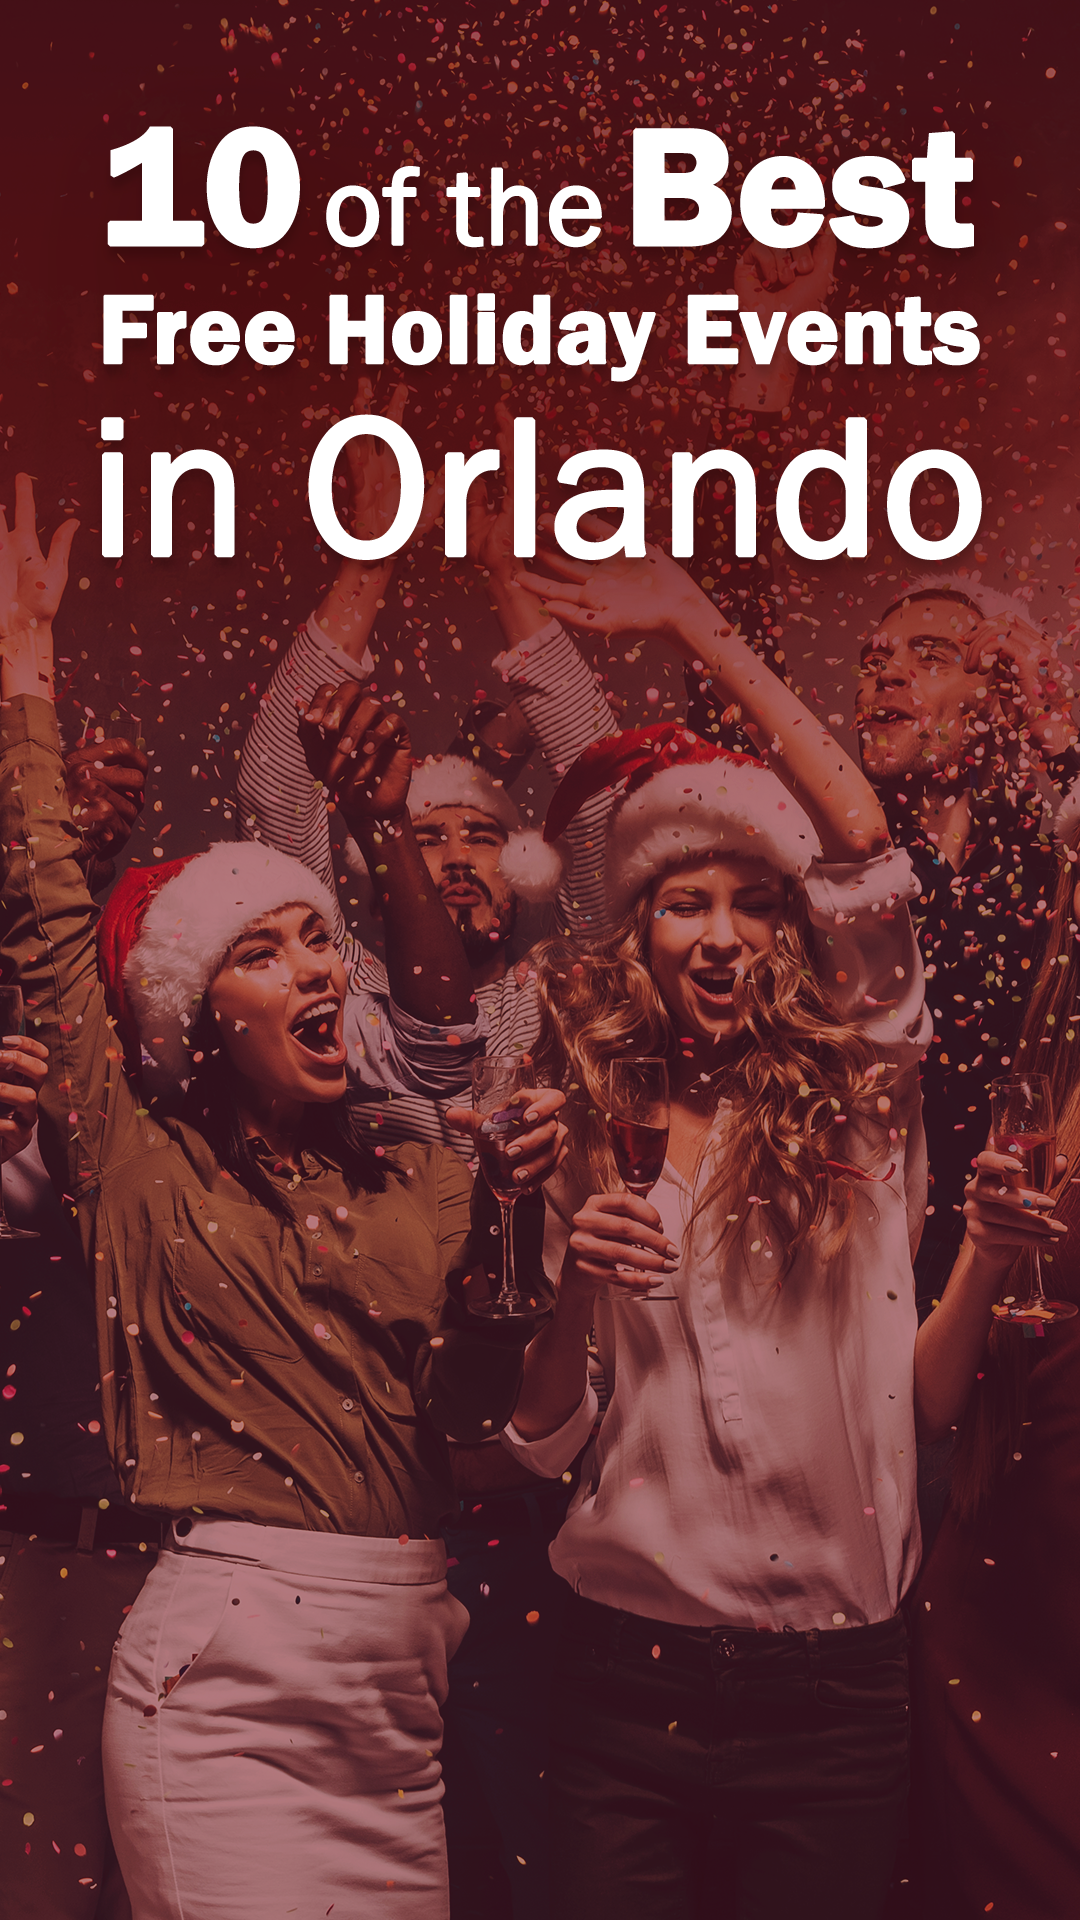 10 Of The Best Free Christmas Events In Orlando Travel Christmas Orlando Orlando Christmas New Years Eve Orlando Christmas Events